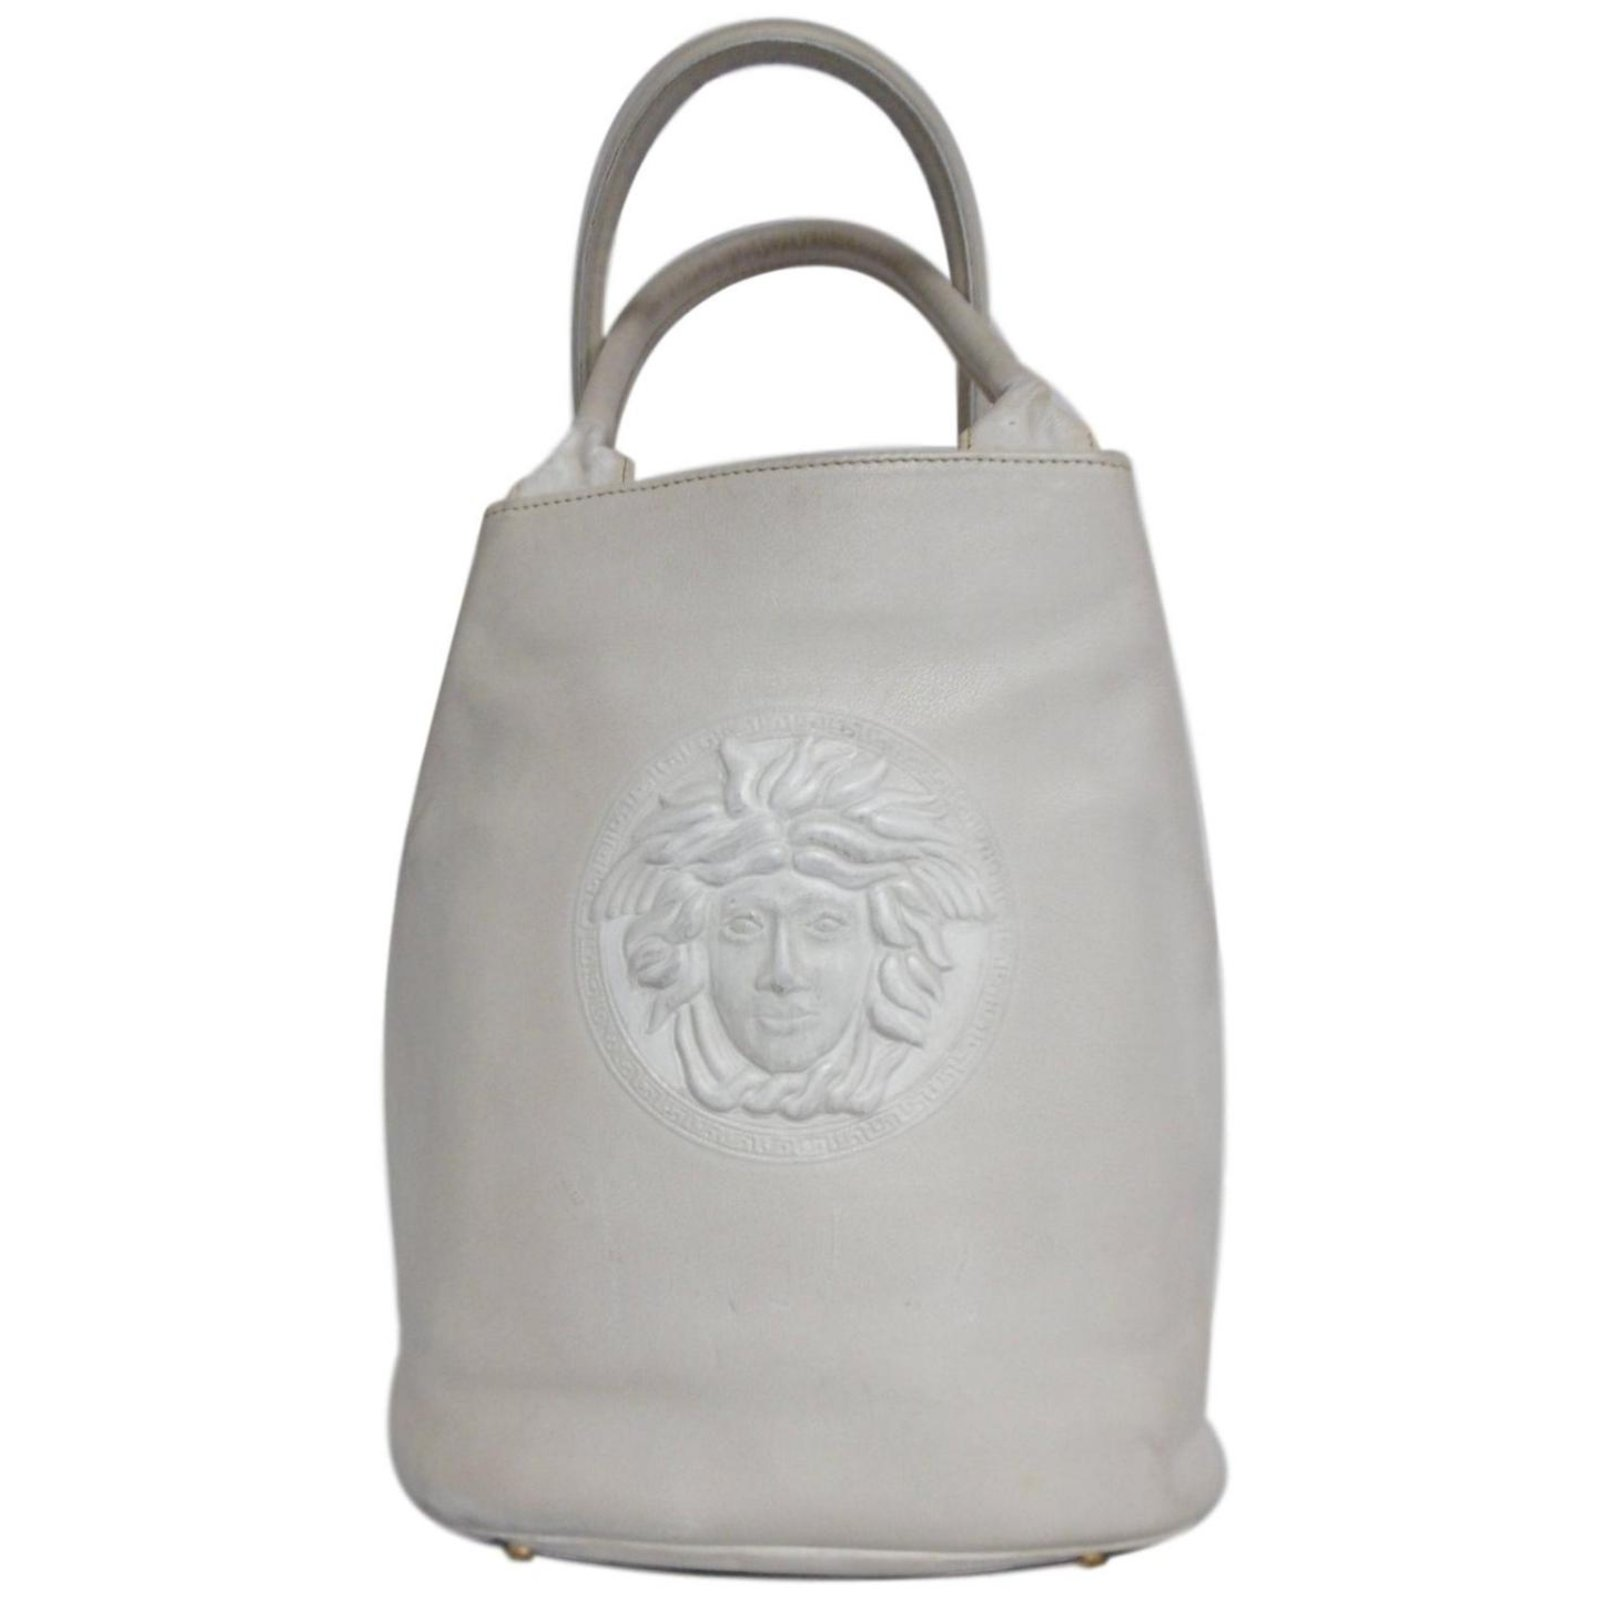 7f80dc5292 Gianni Versace Medusa Bucket Bag Handbags Leather White ref.78928 ...